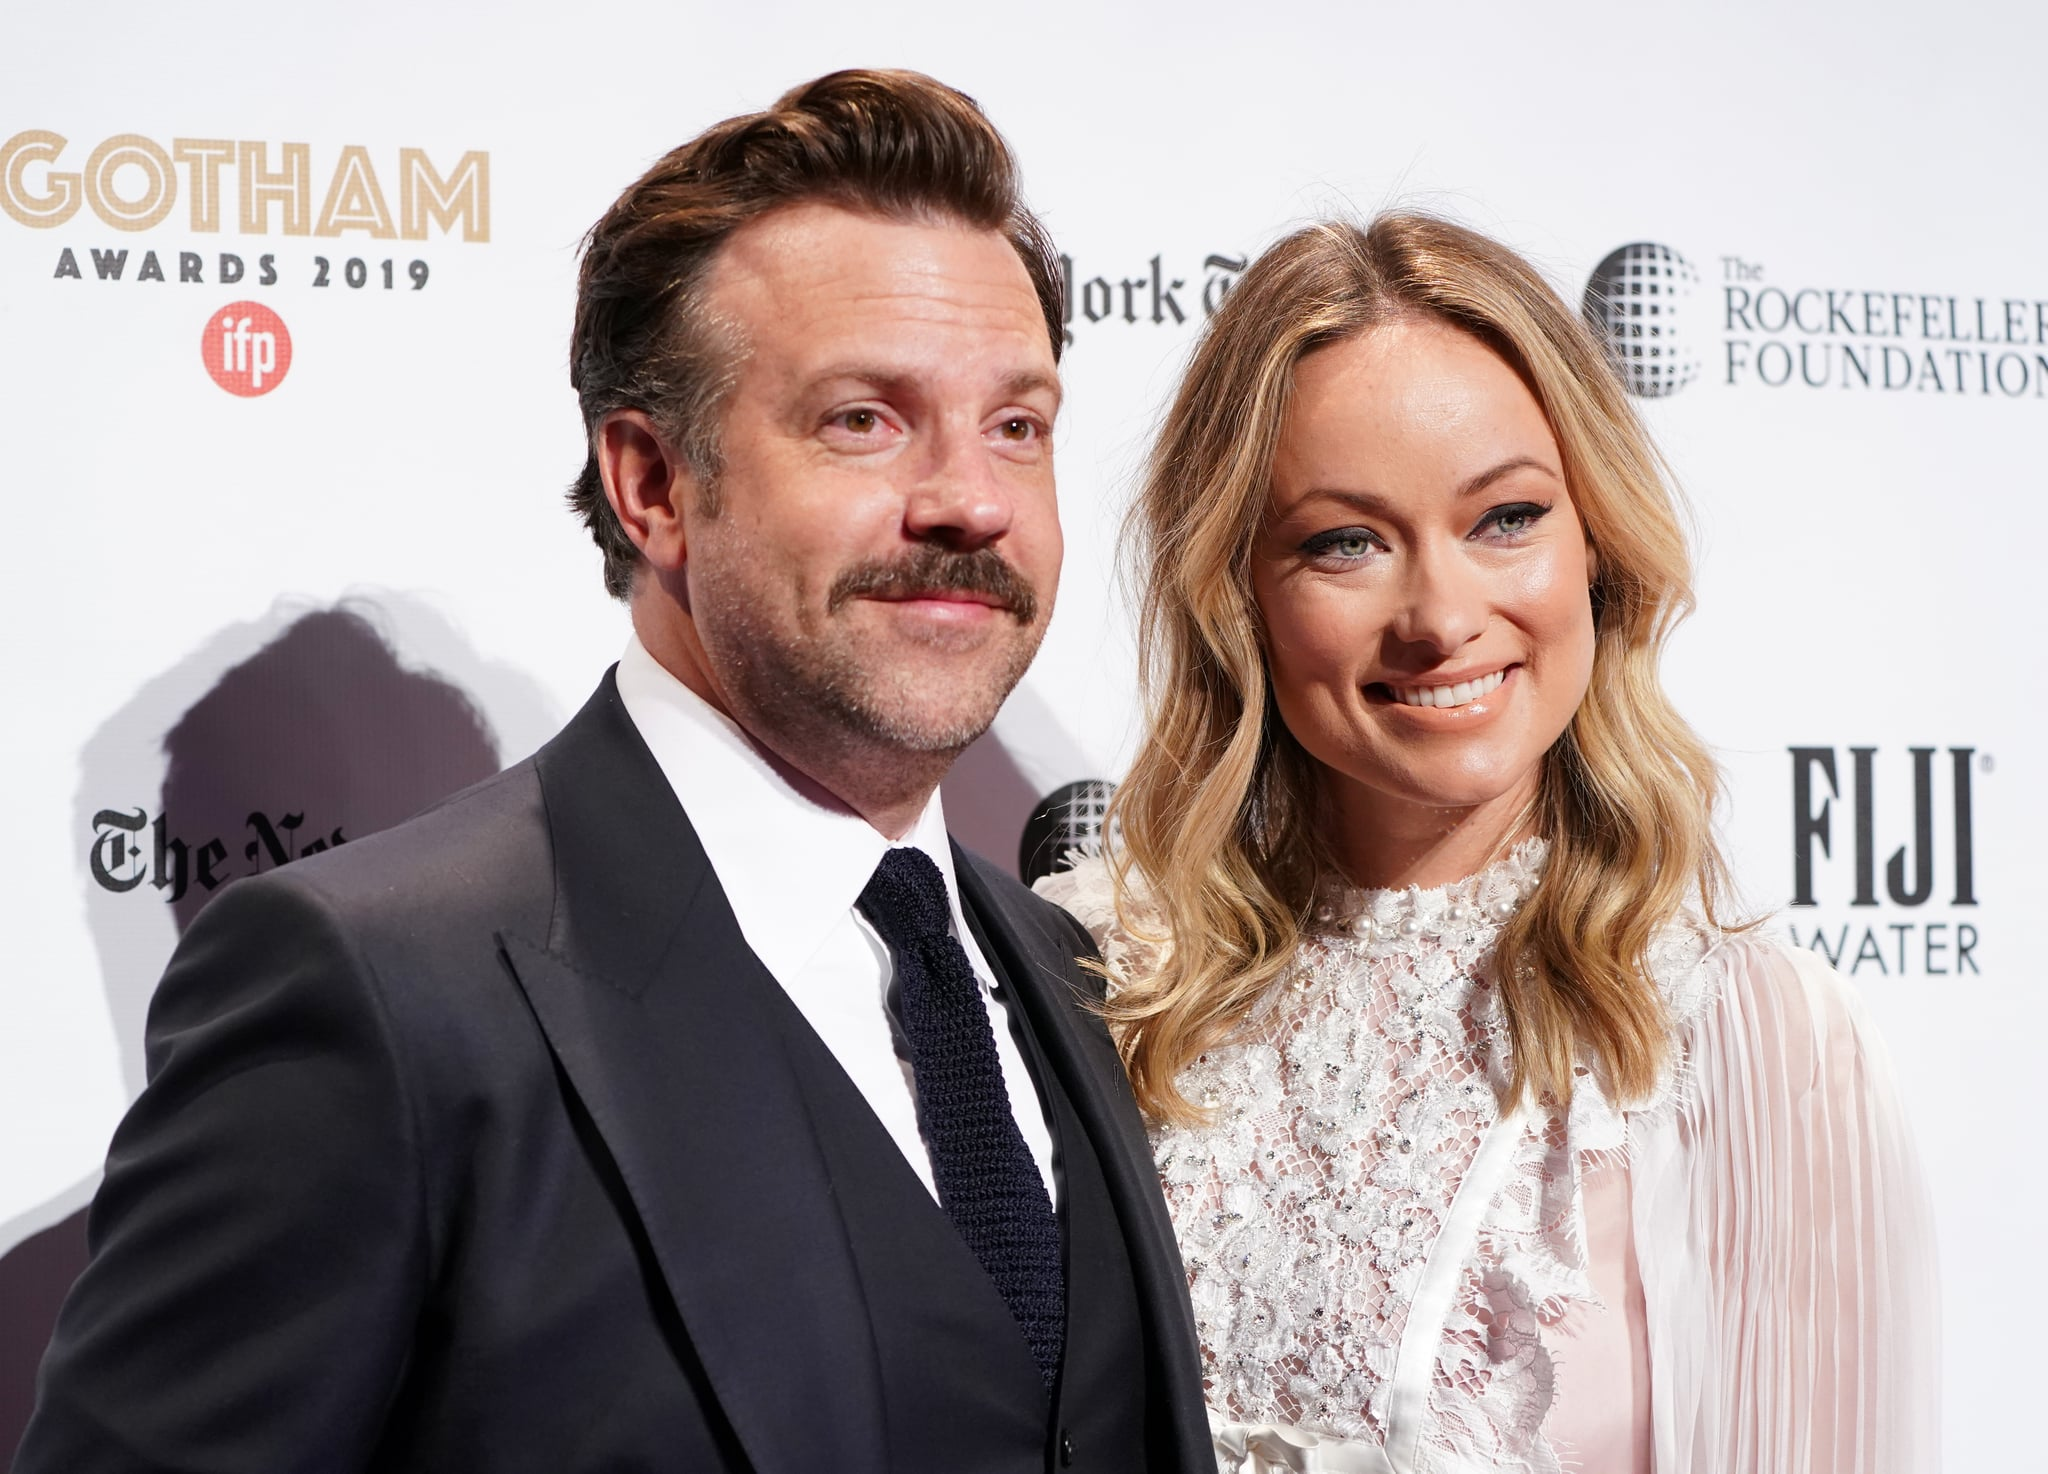 NEW YORK, NEW YORK - DECEMBER 02: Jason Sudeikis and Olivia Wilde attend the IFP's 29th Annual Gotham Independent Film Awards at Cipriani Wall Street on December 02, 2019 in New York City. (Photo by Jemal Countess/Getty Images for IFP)